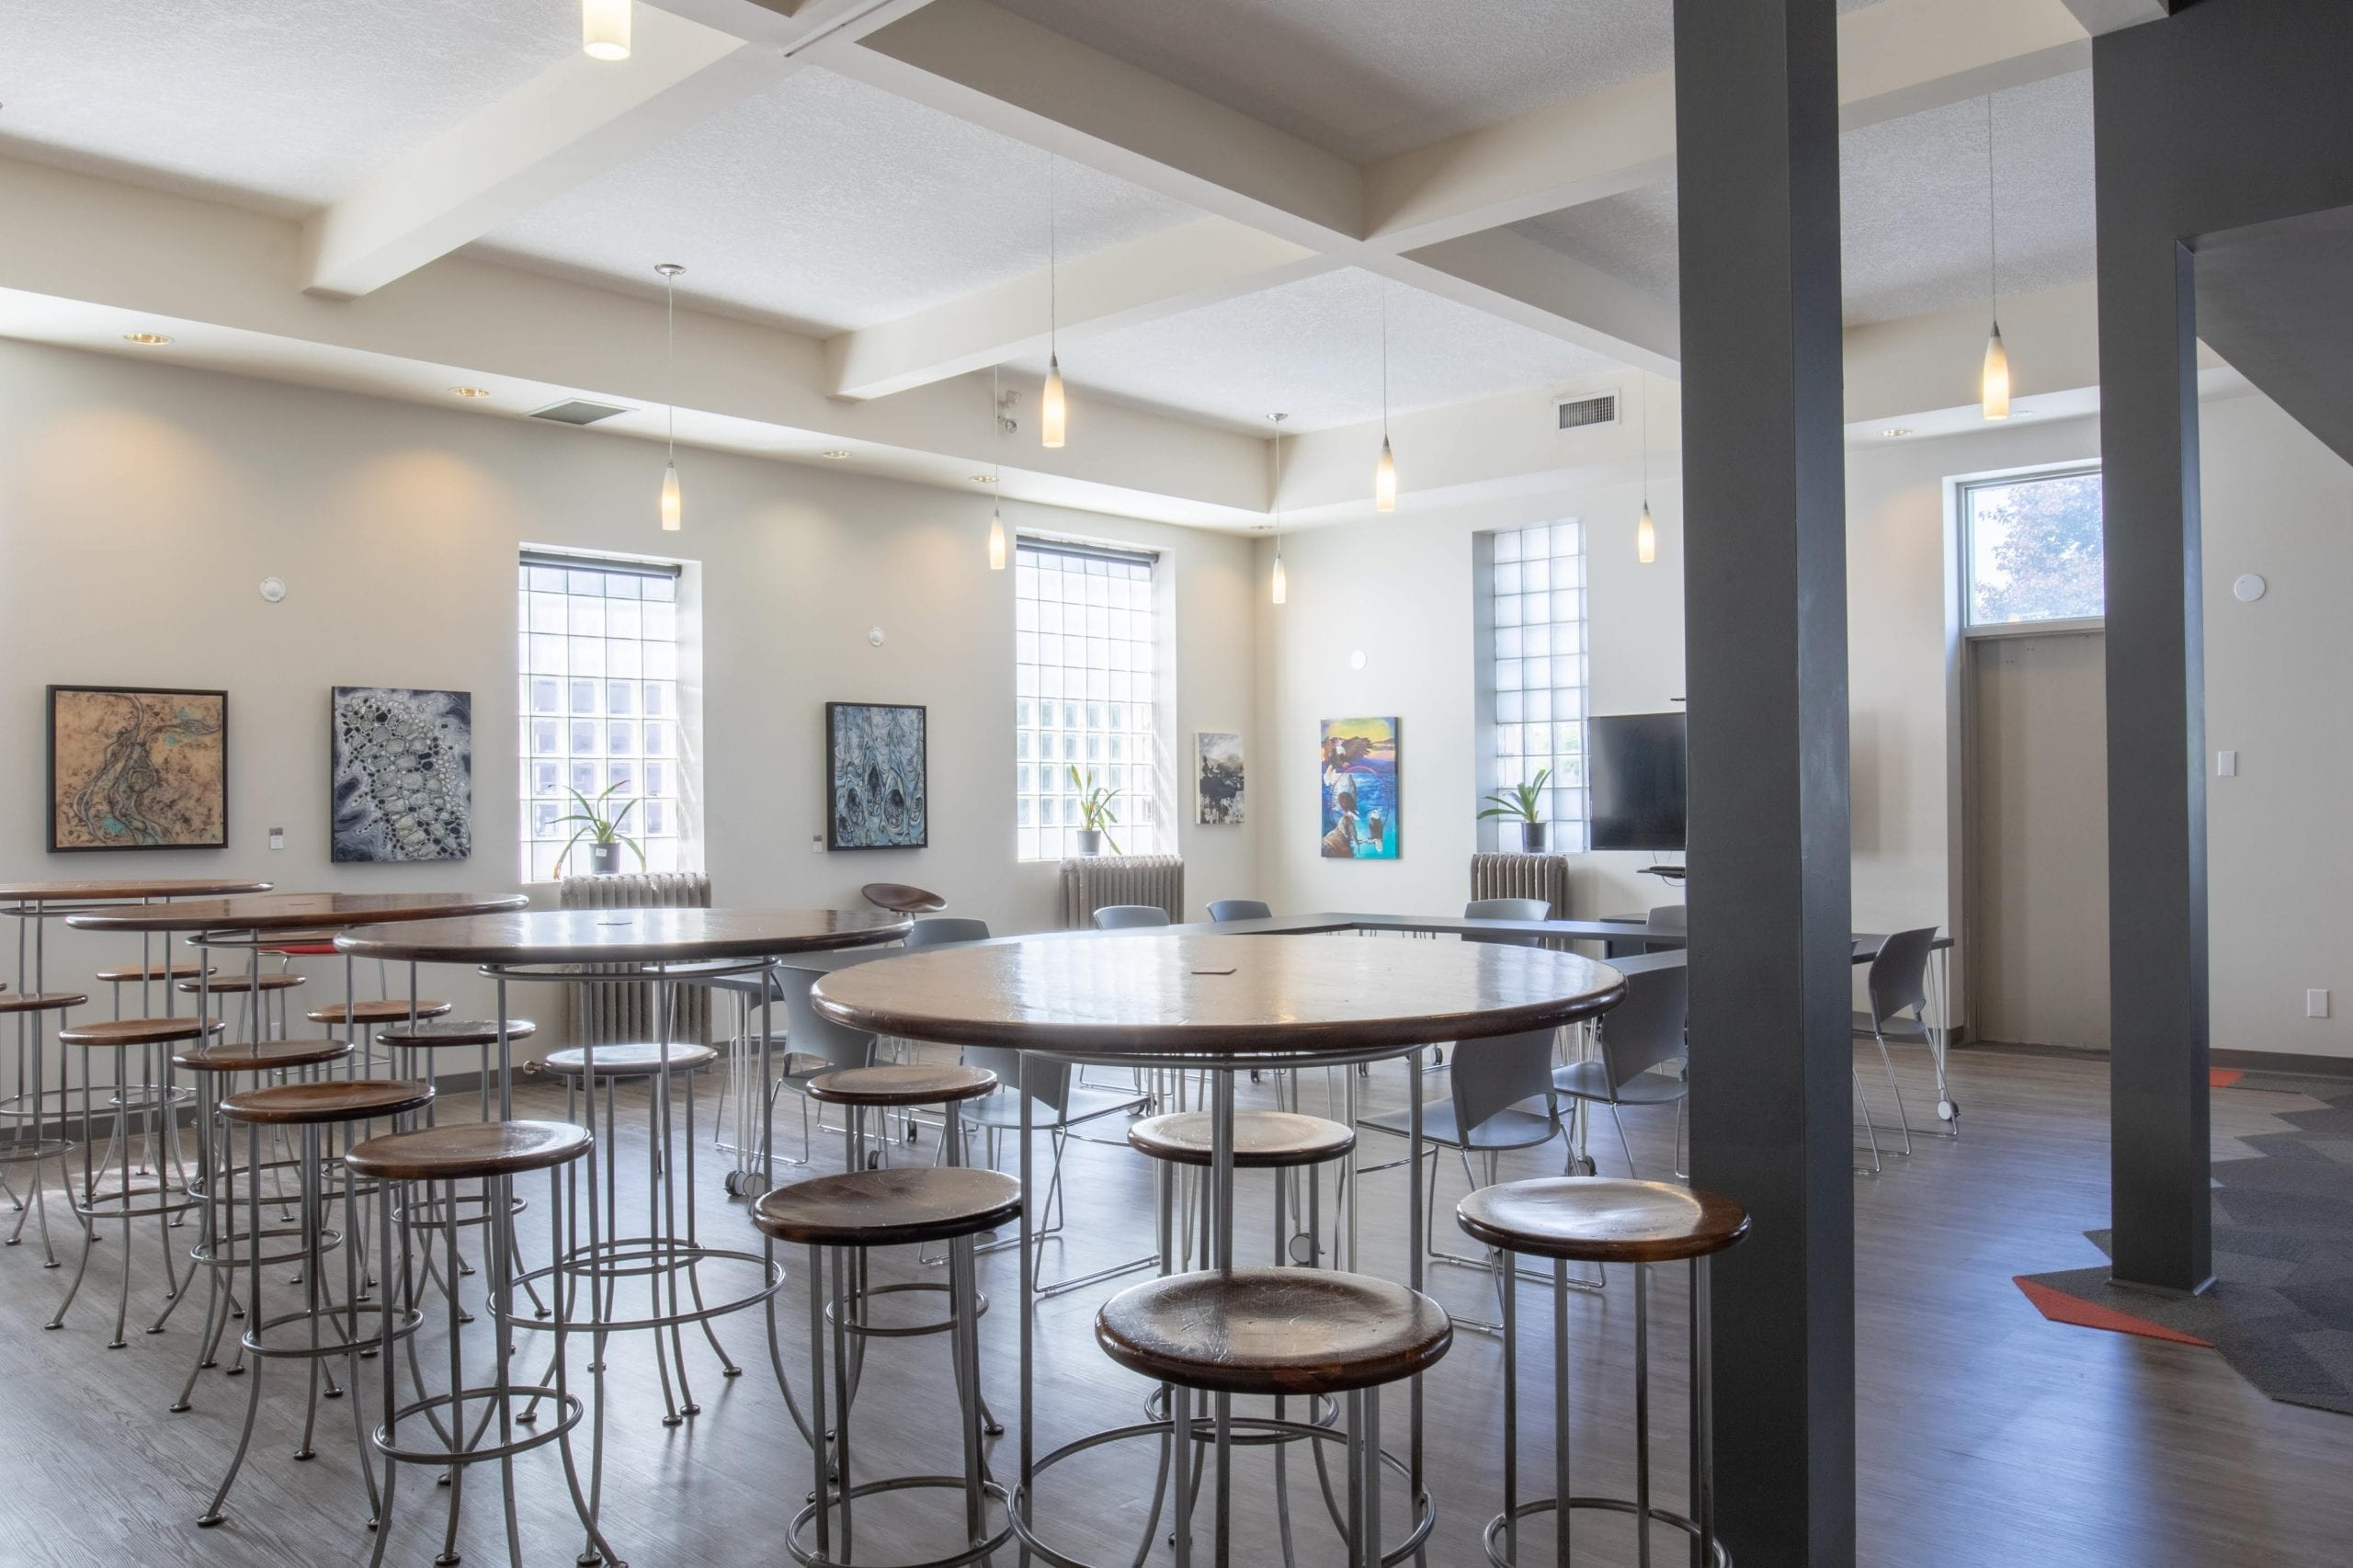 CoLab Community Coworking Rental Space - Affinity Hall